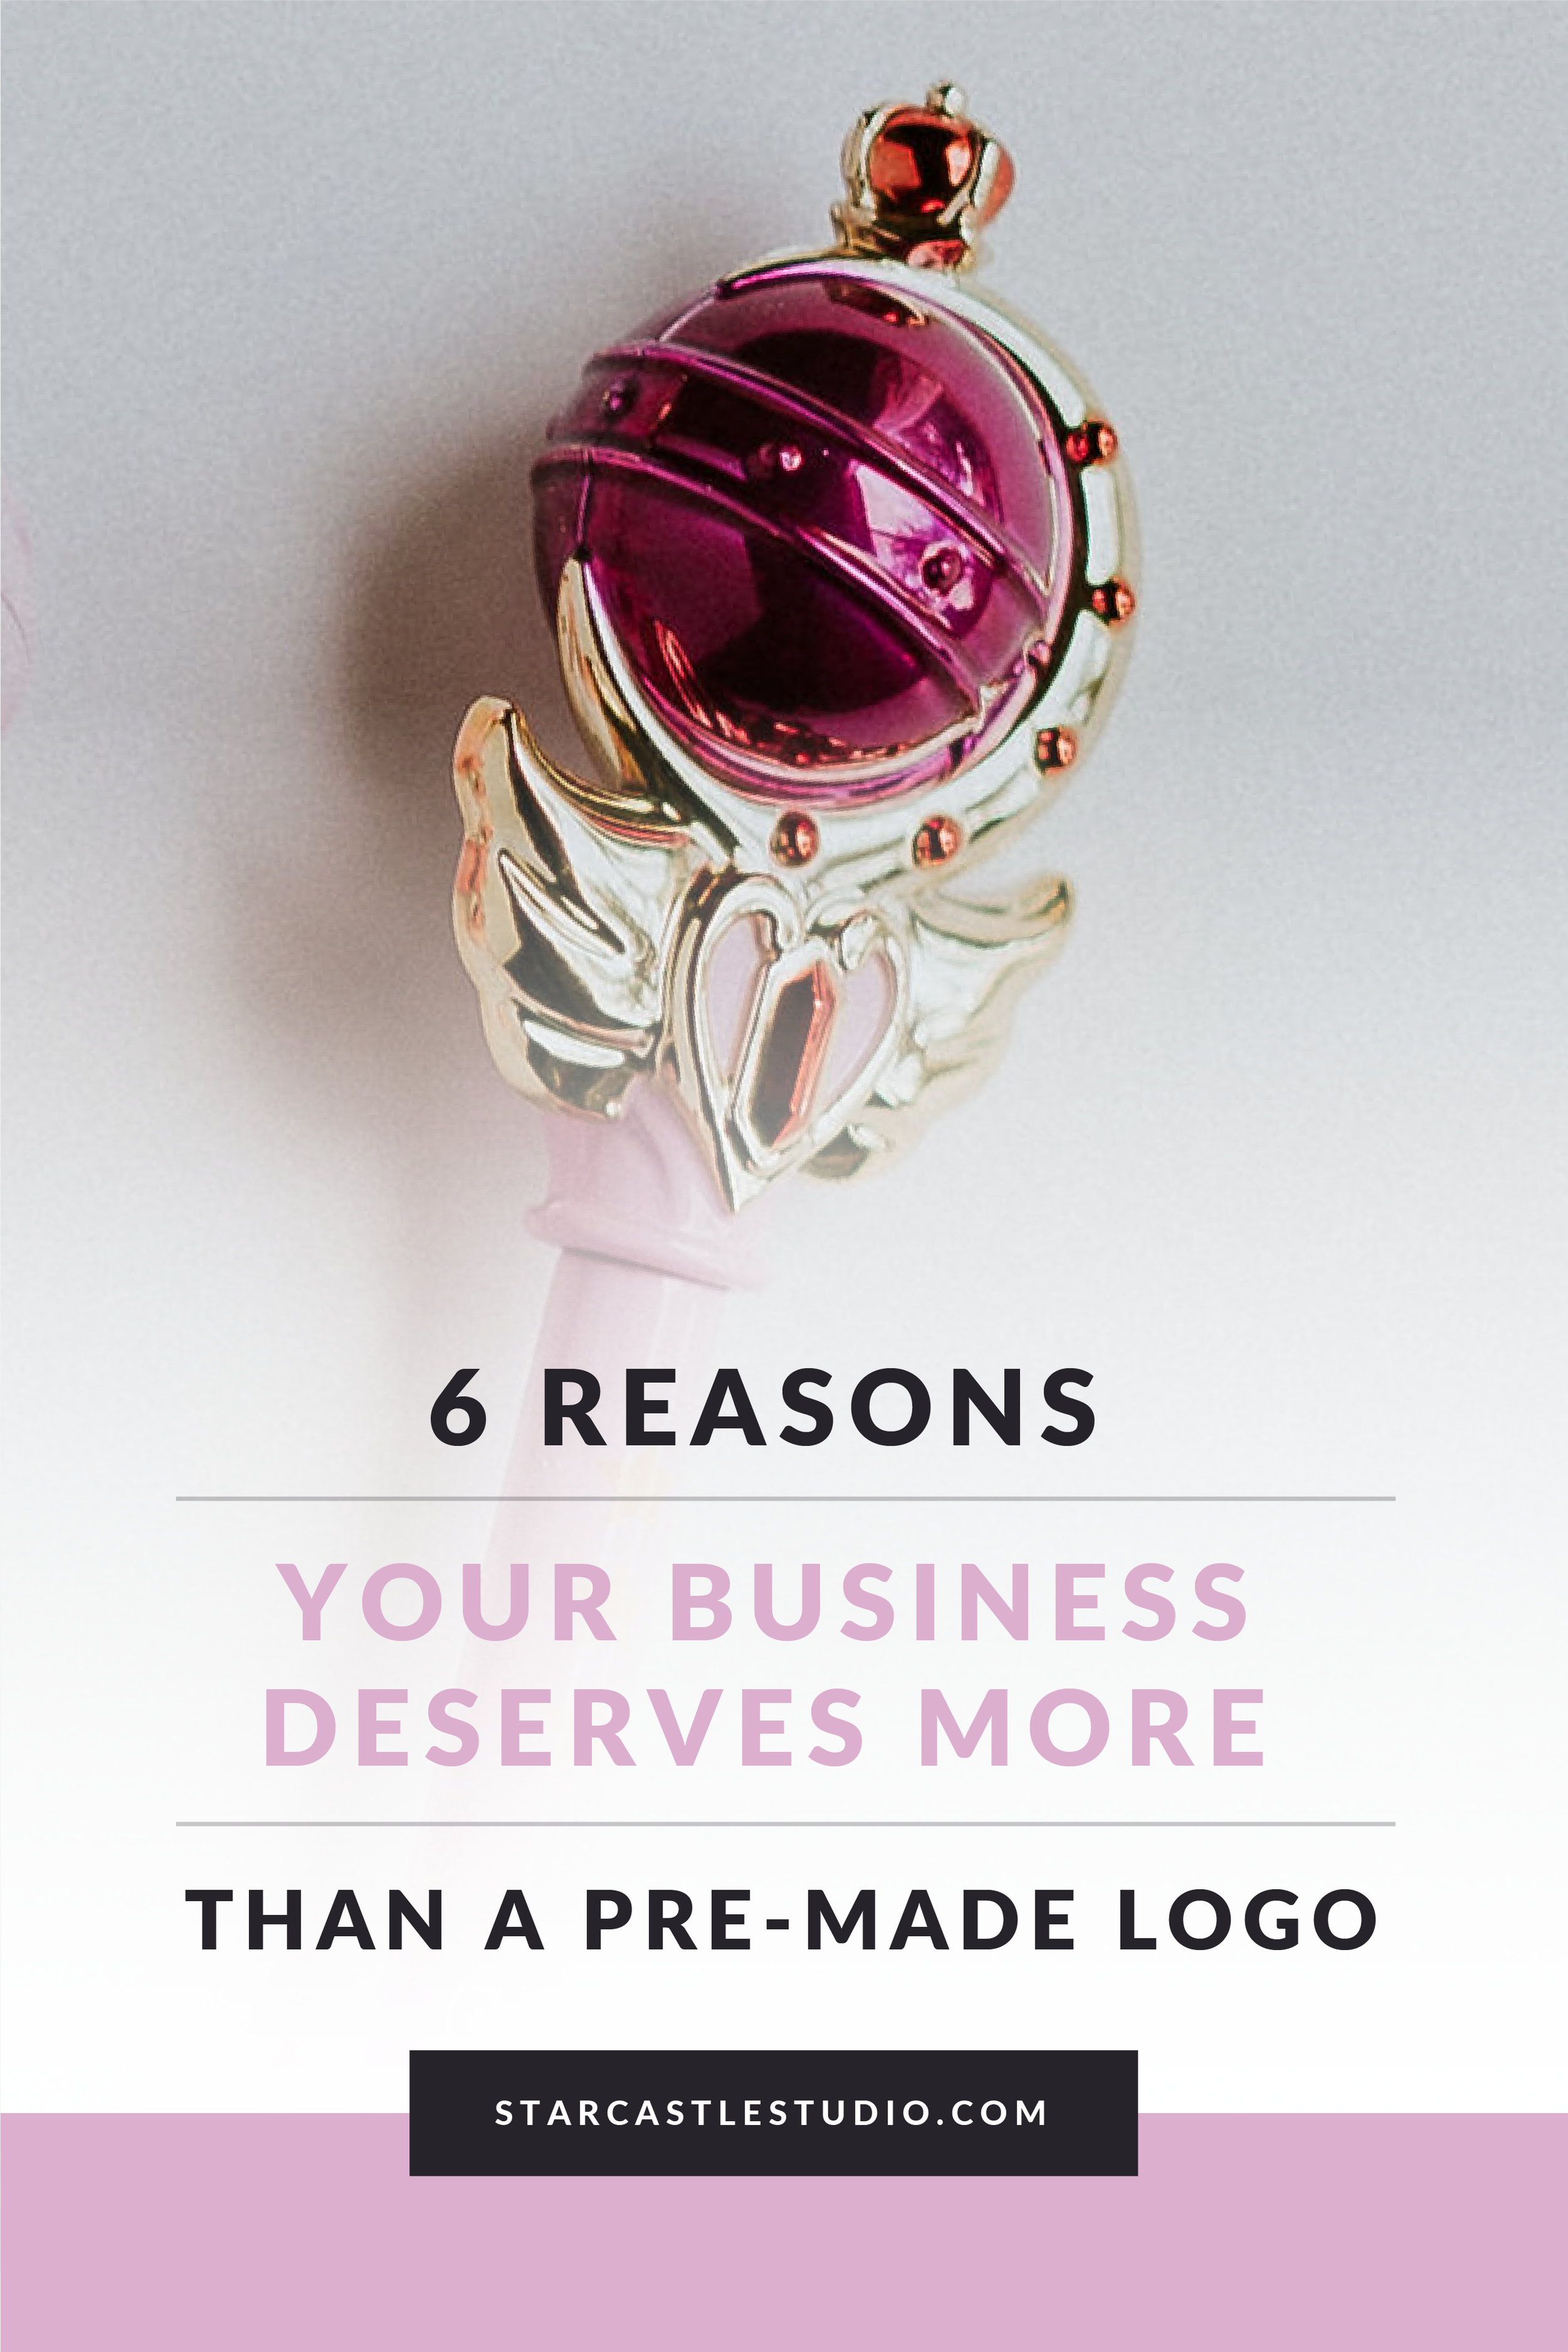 Branding is more than a logo